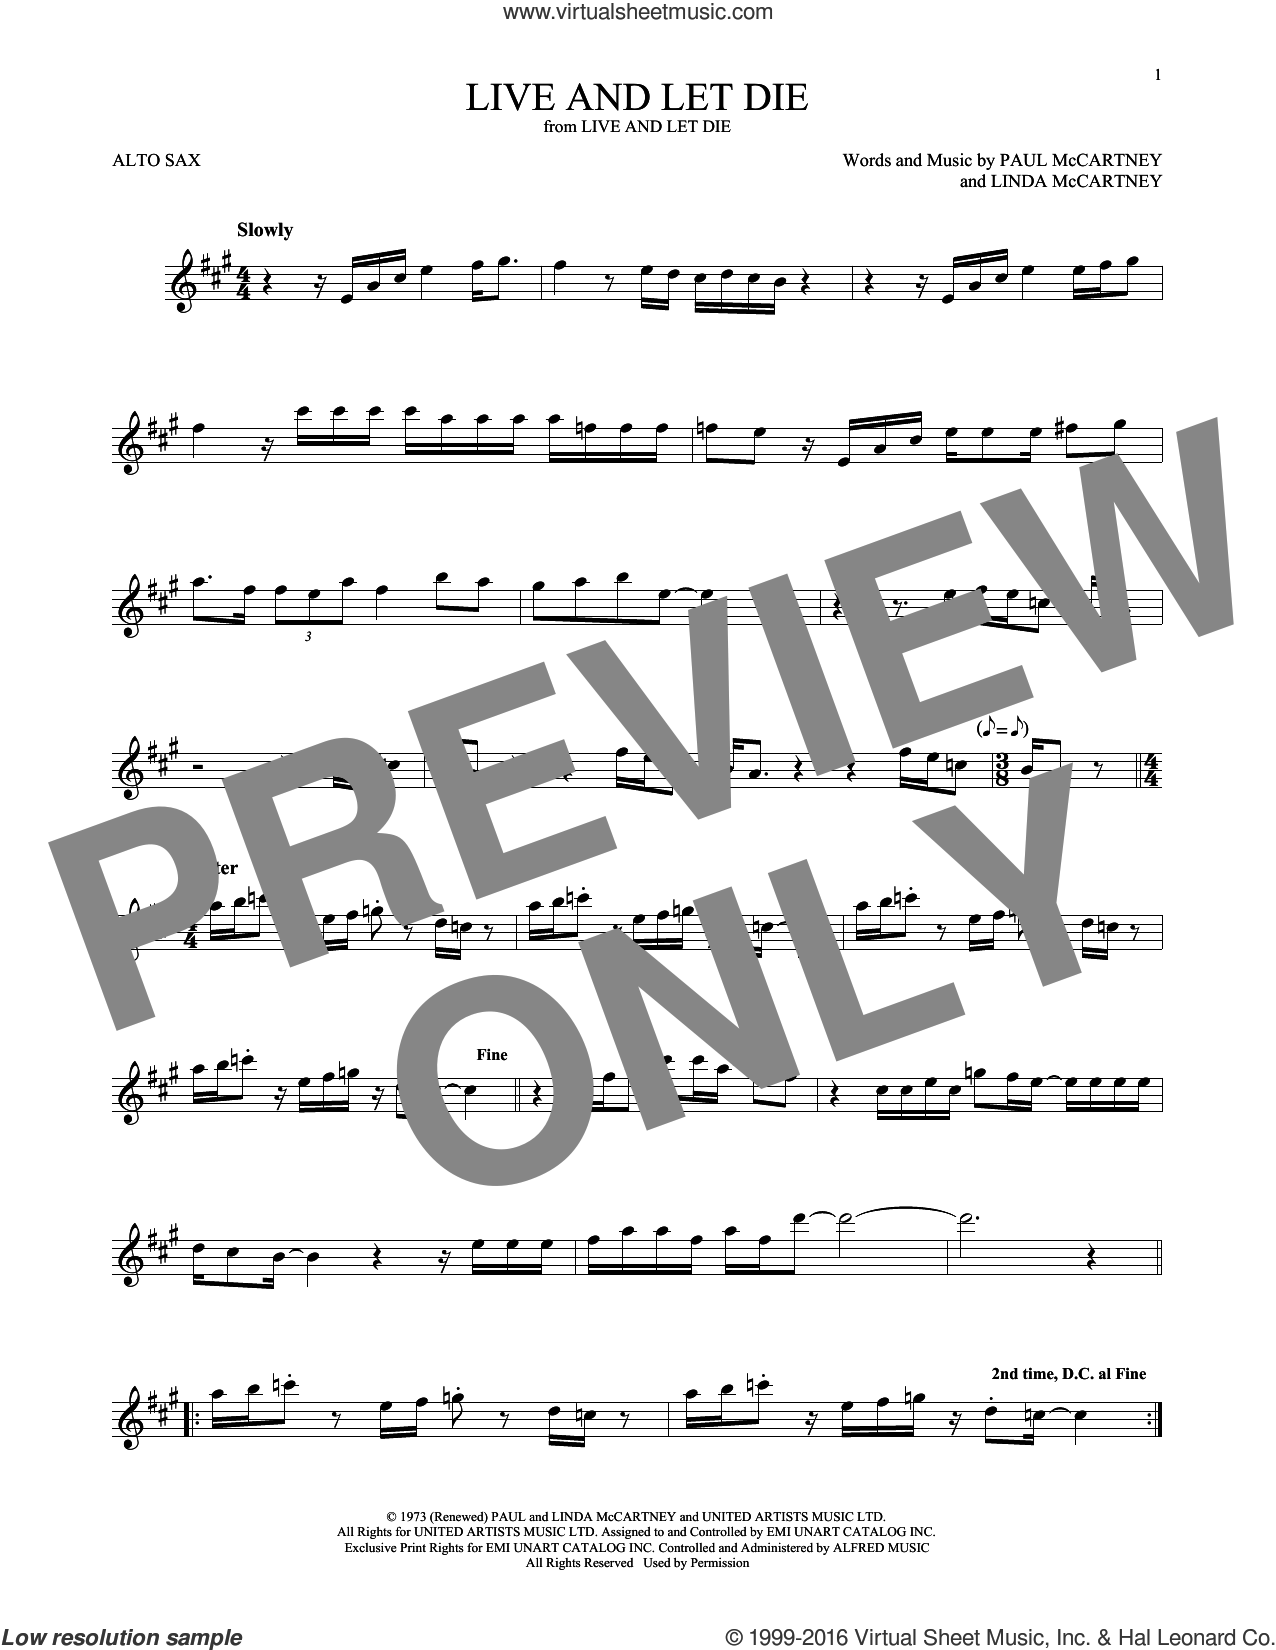 Live And Let Die sheet music for alto saxophone solo by Wings, Linda McCartney and Paul McCartney, intermediate skill level